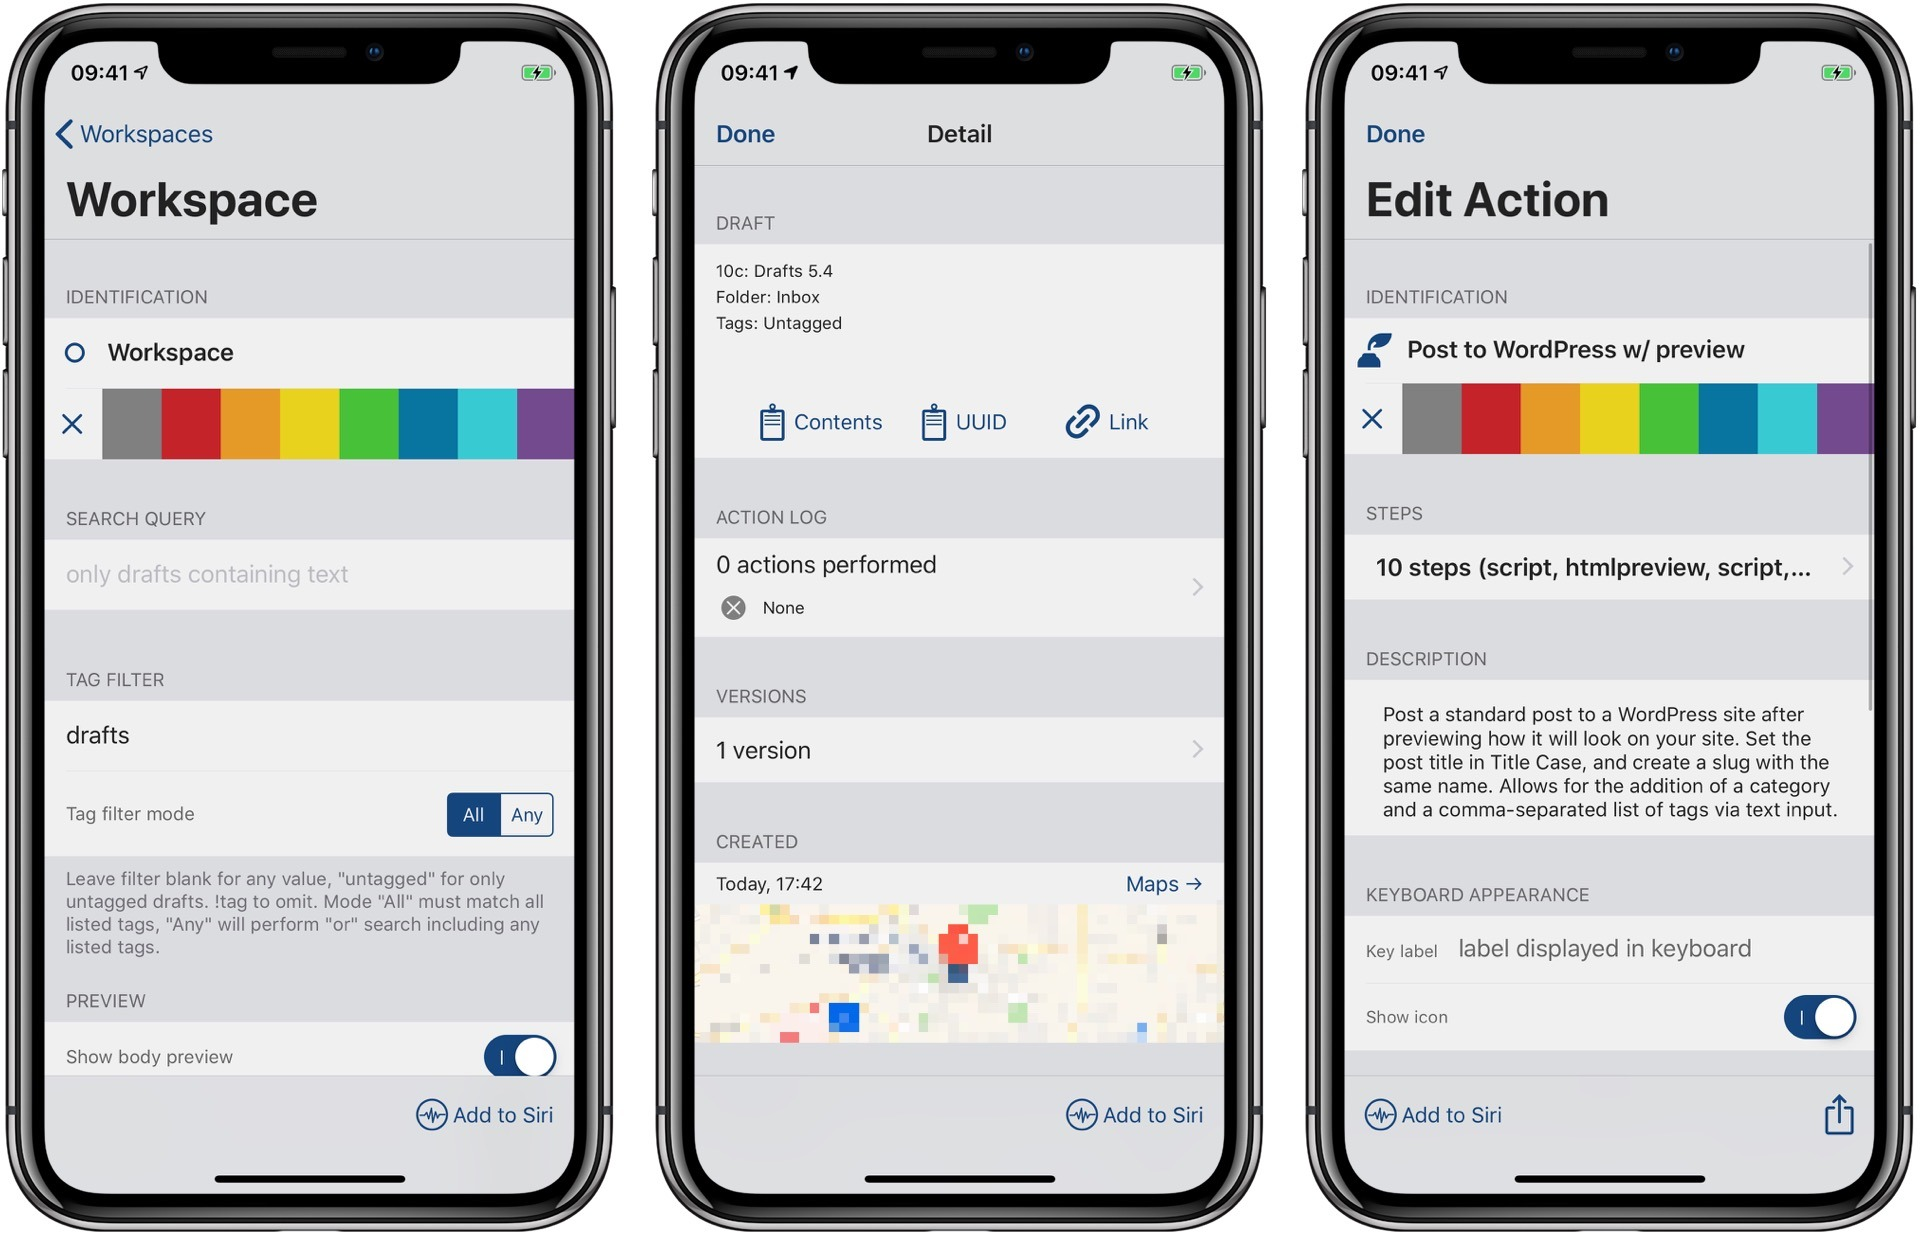 Add to Siri is found in workspaces, drafts, and actions.